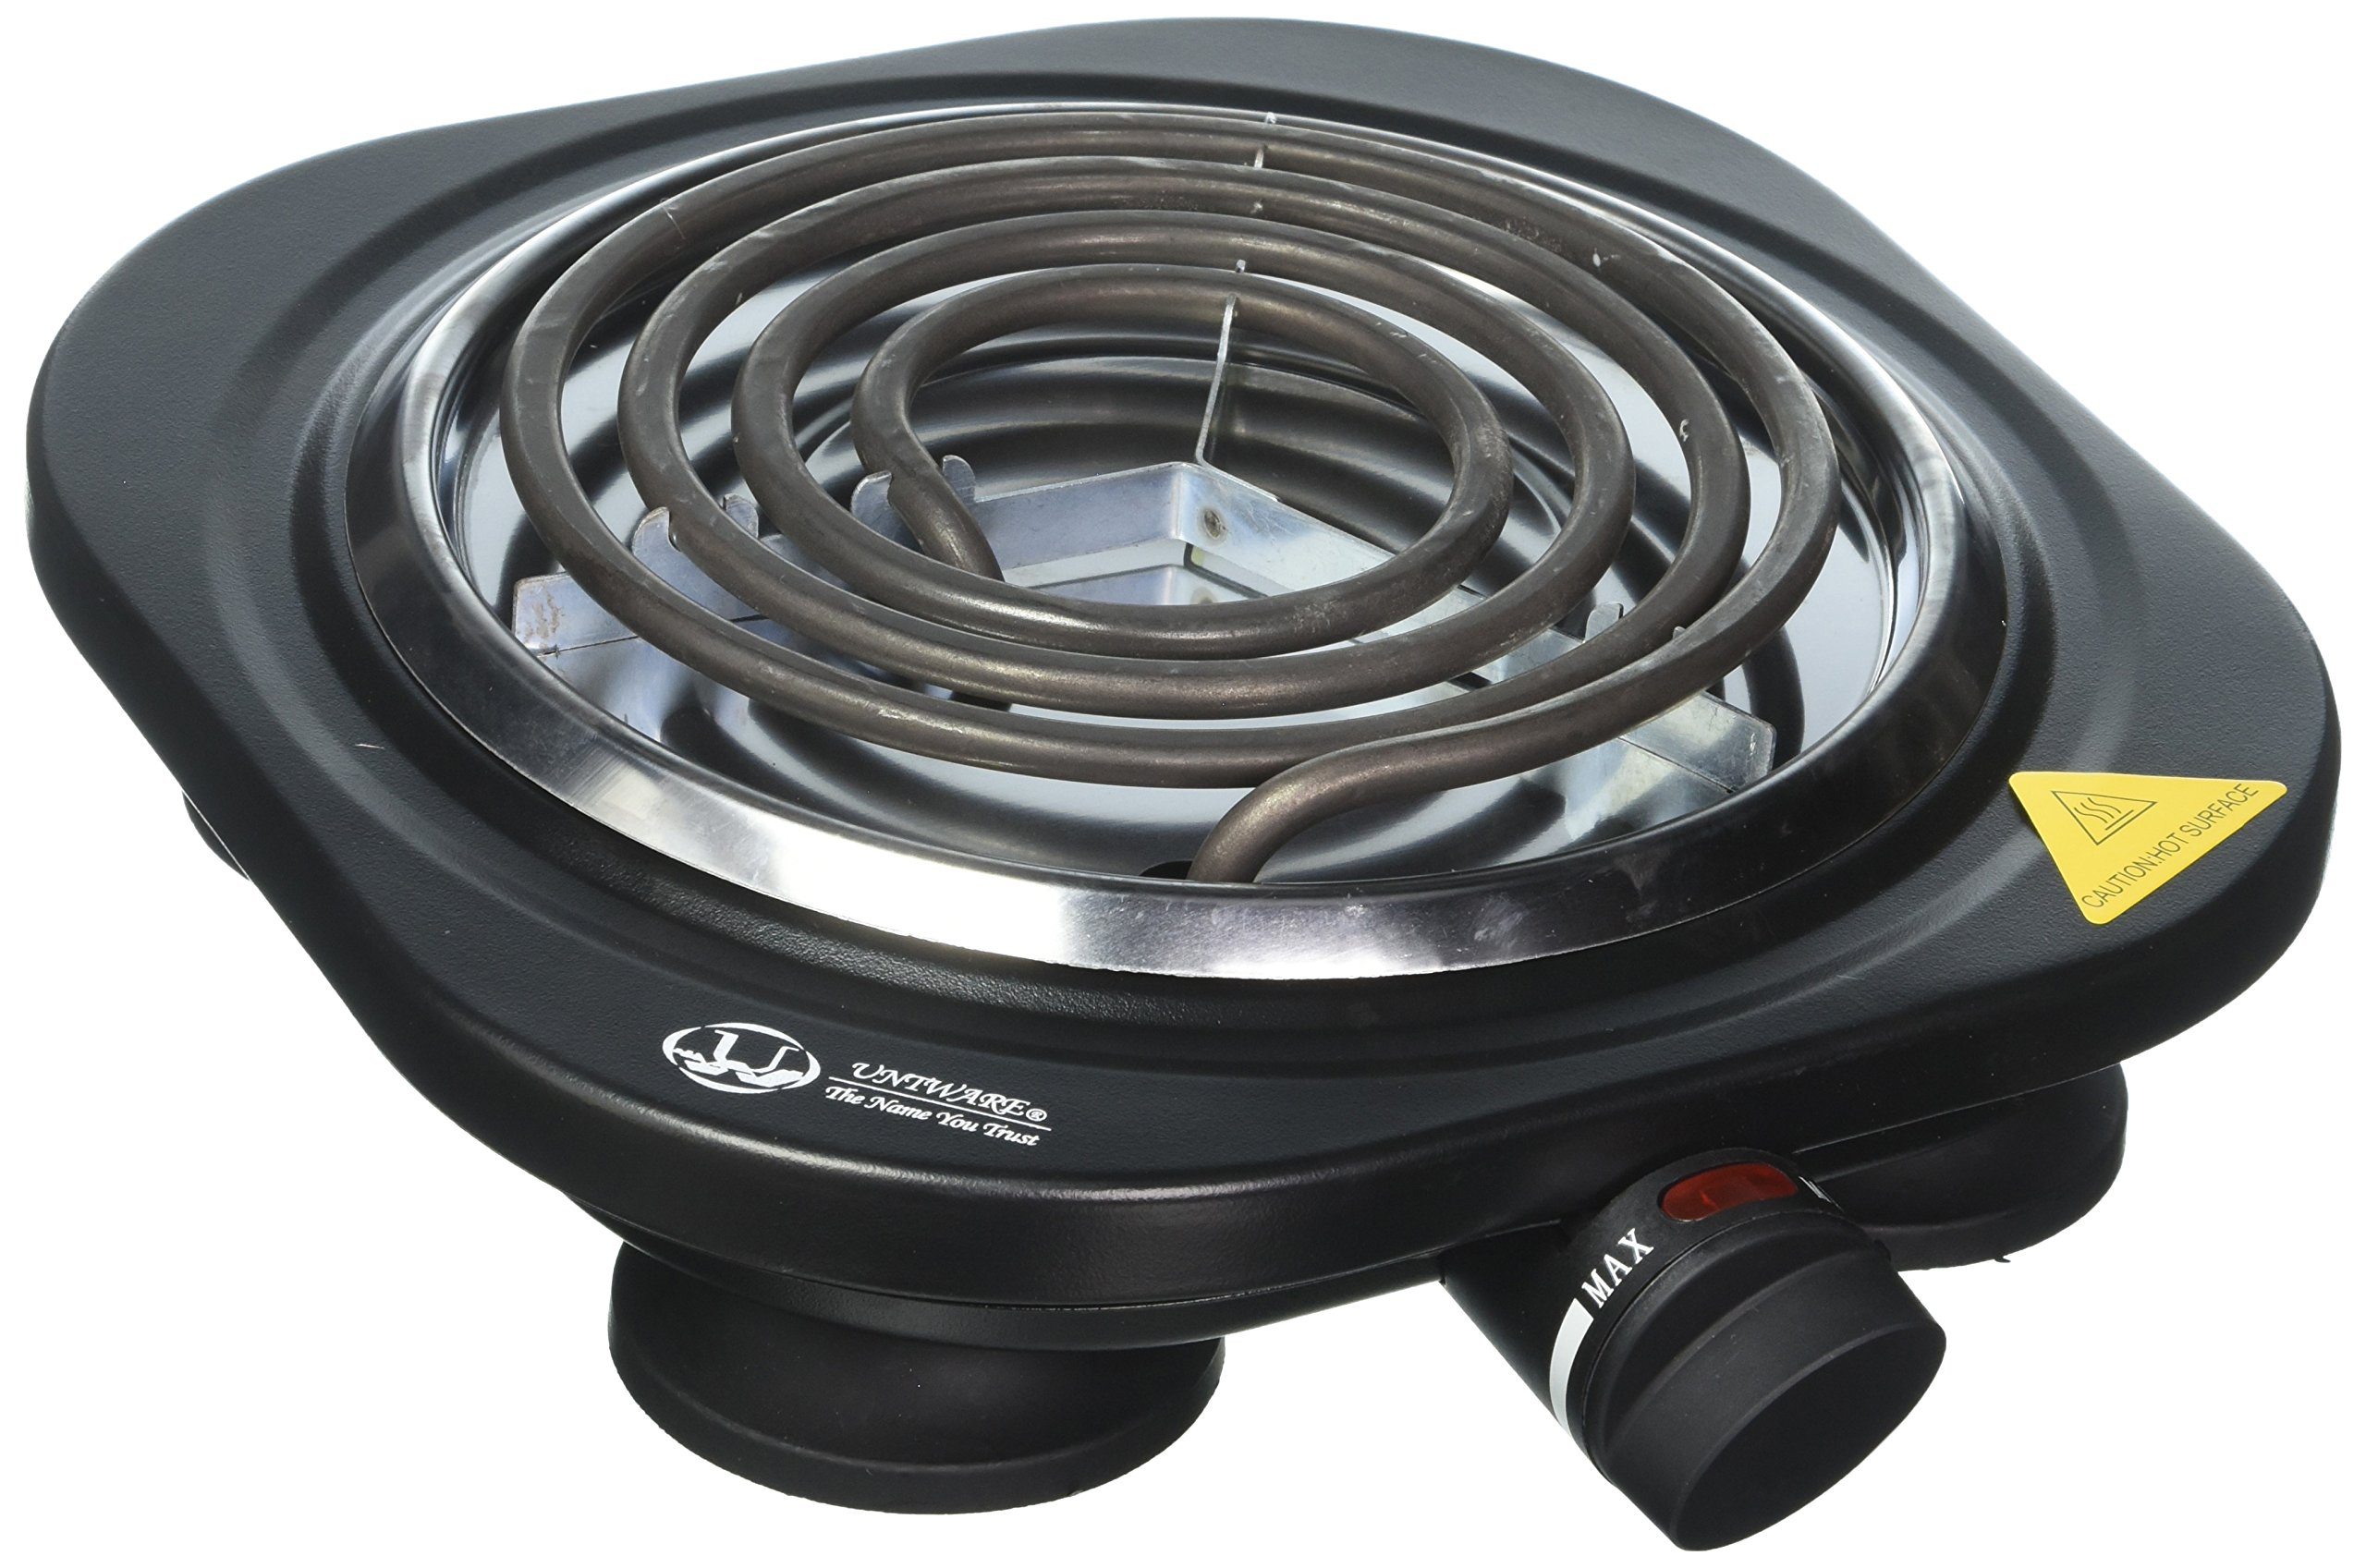 Uniware 1100W Portable Electric Cast Iron Burner, Perfect for all occasions, Black (Singer)